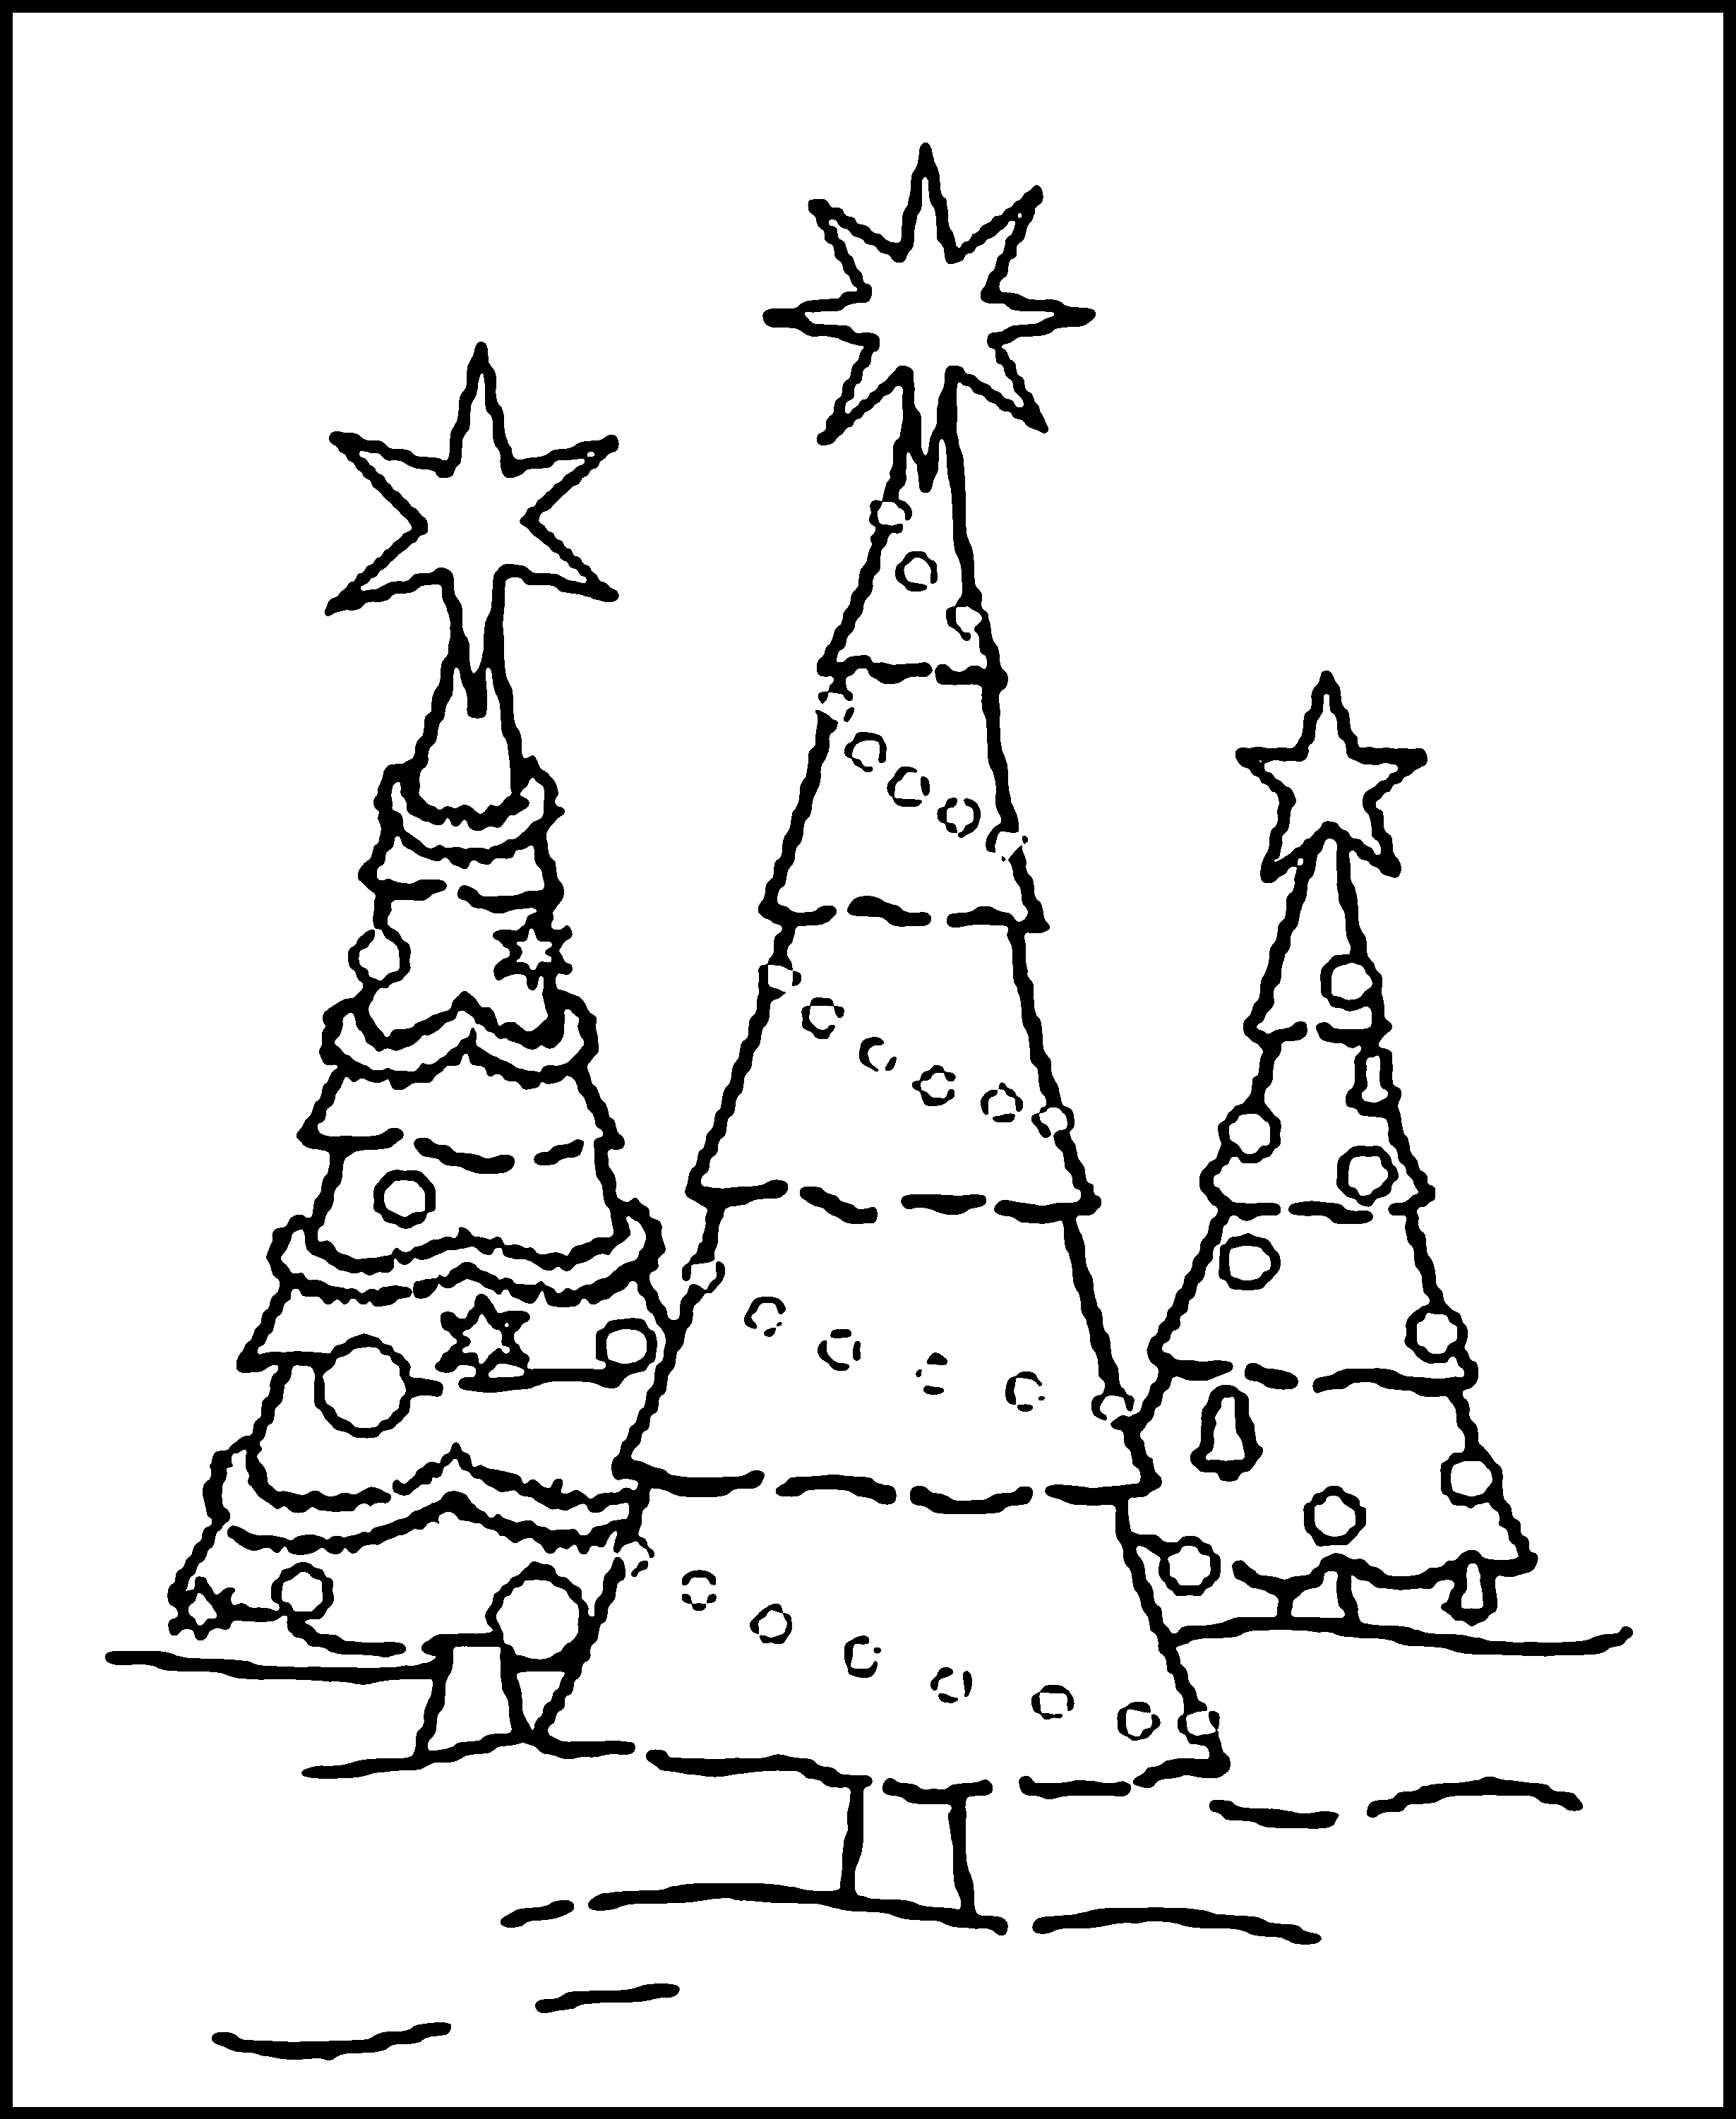 coloring pages christmas tree printable christmas tree coloring pages for kids cool2bkids tree coloring christmas pages